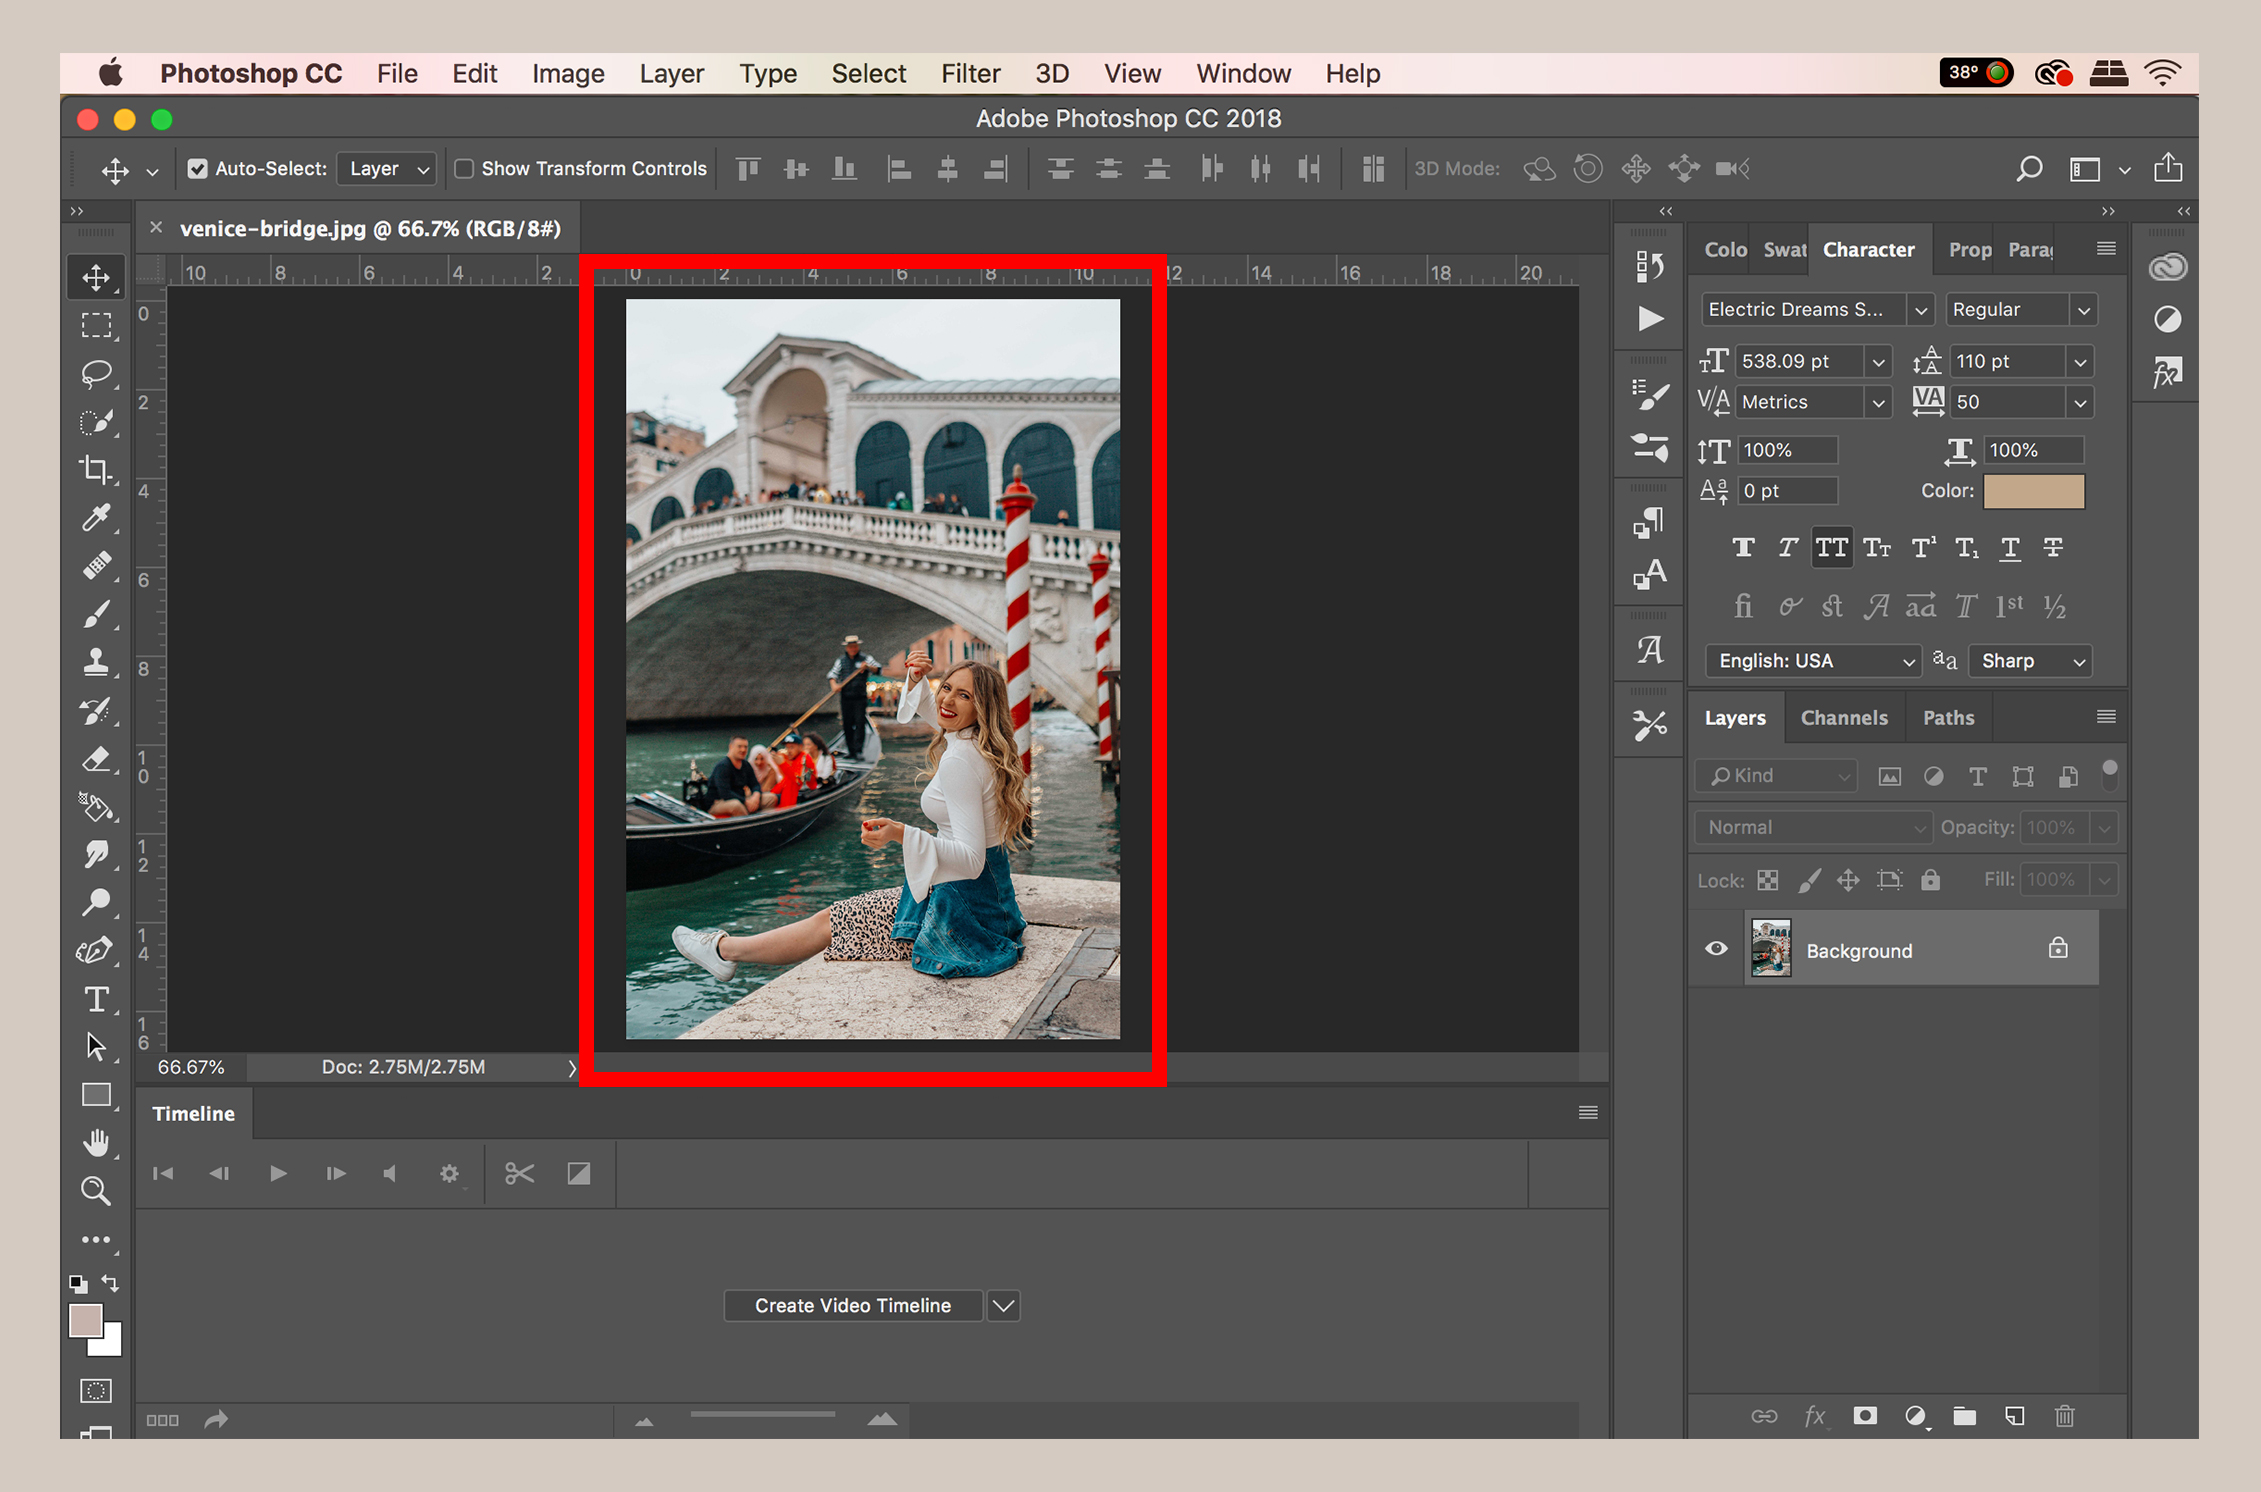 How to open an image in Photoshop